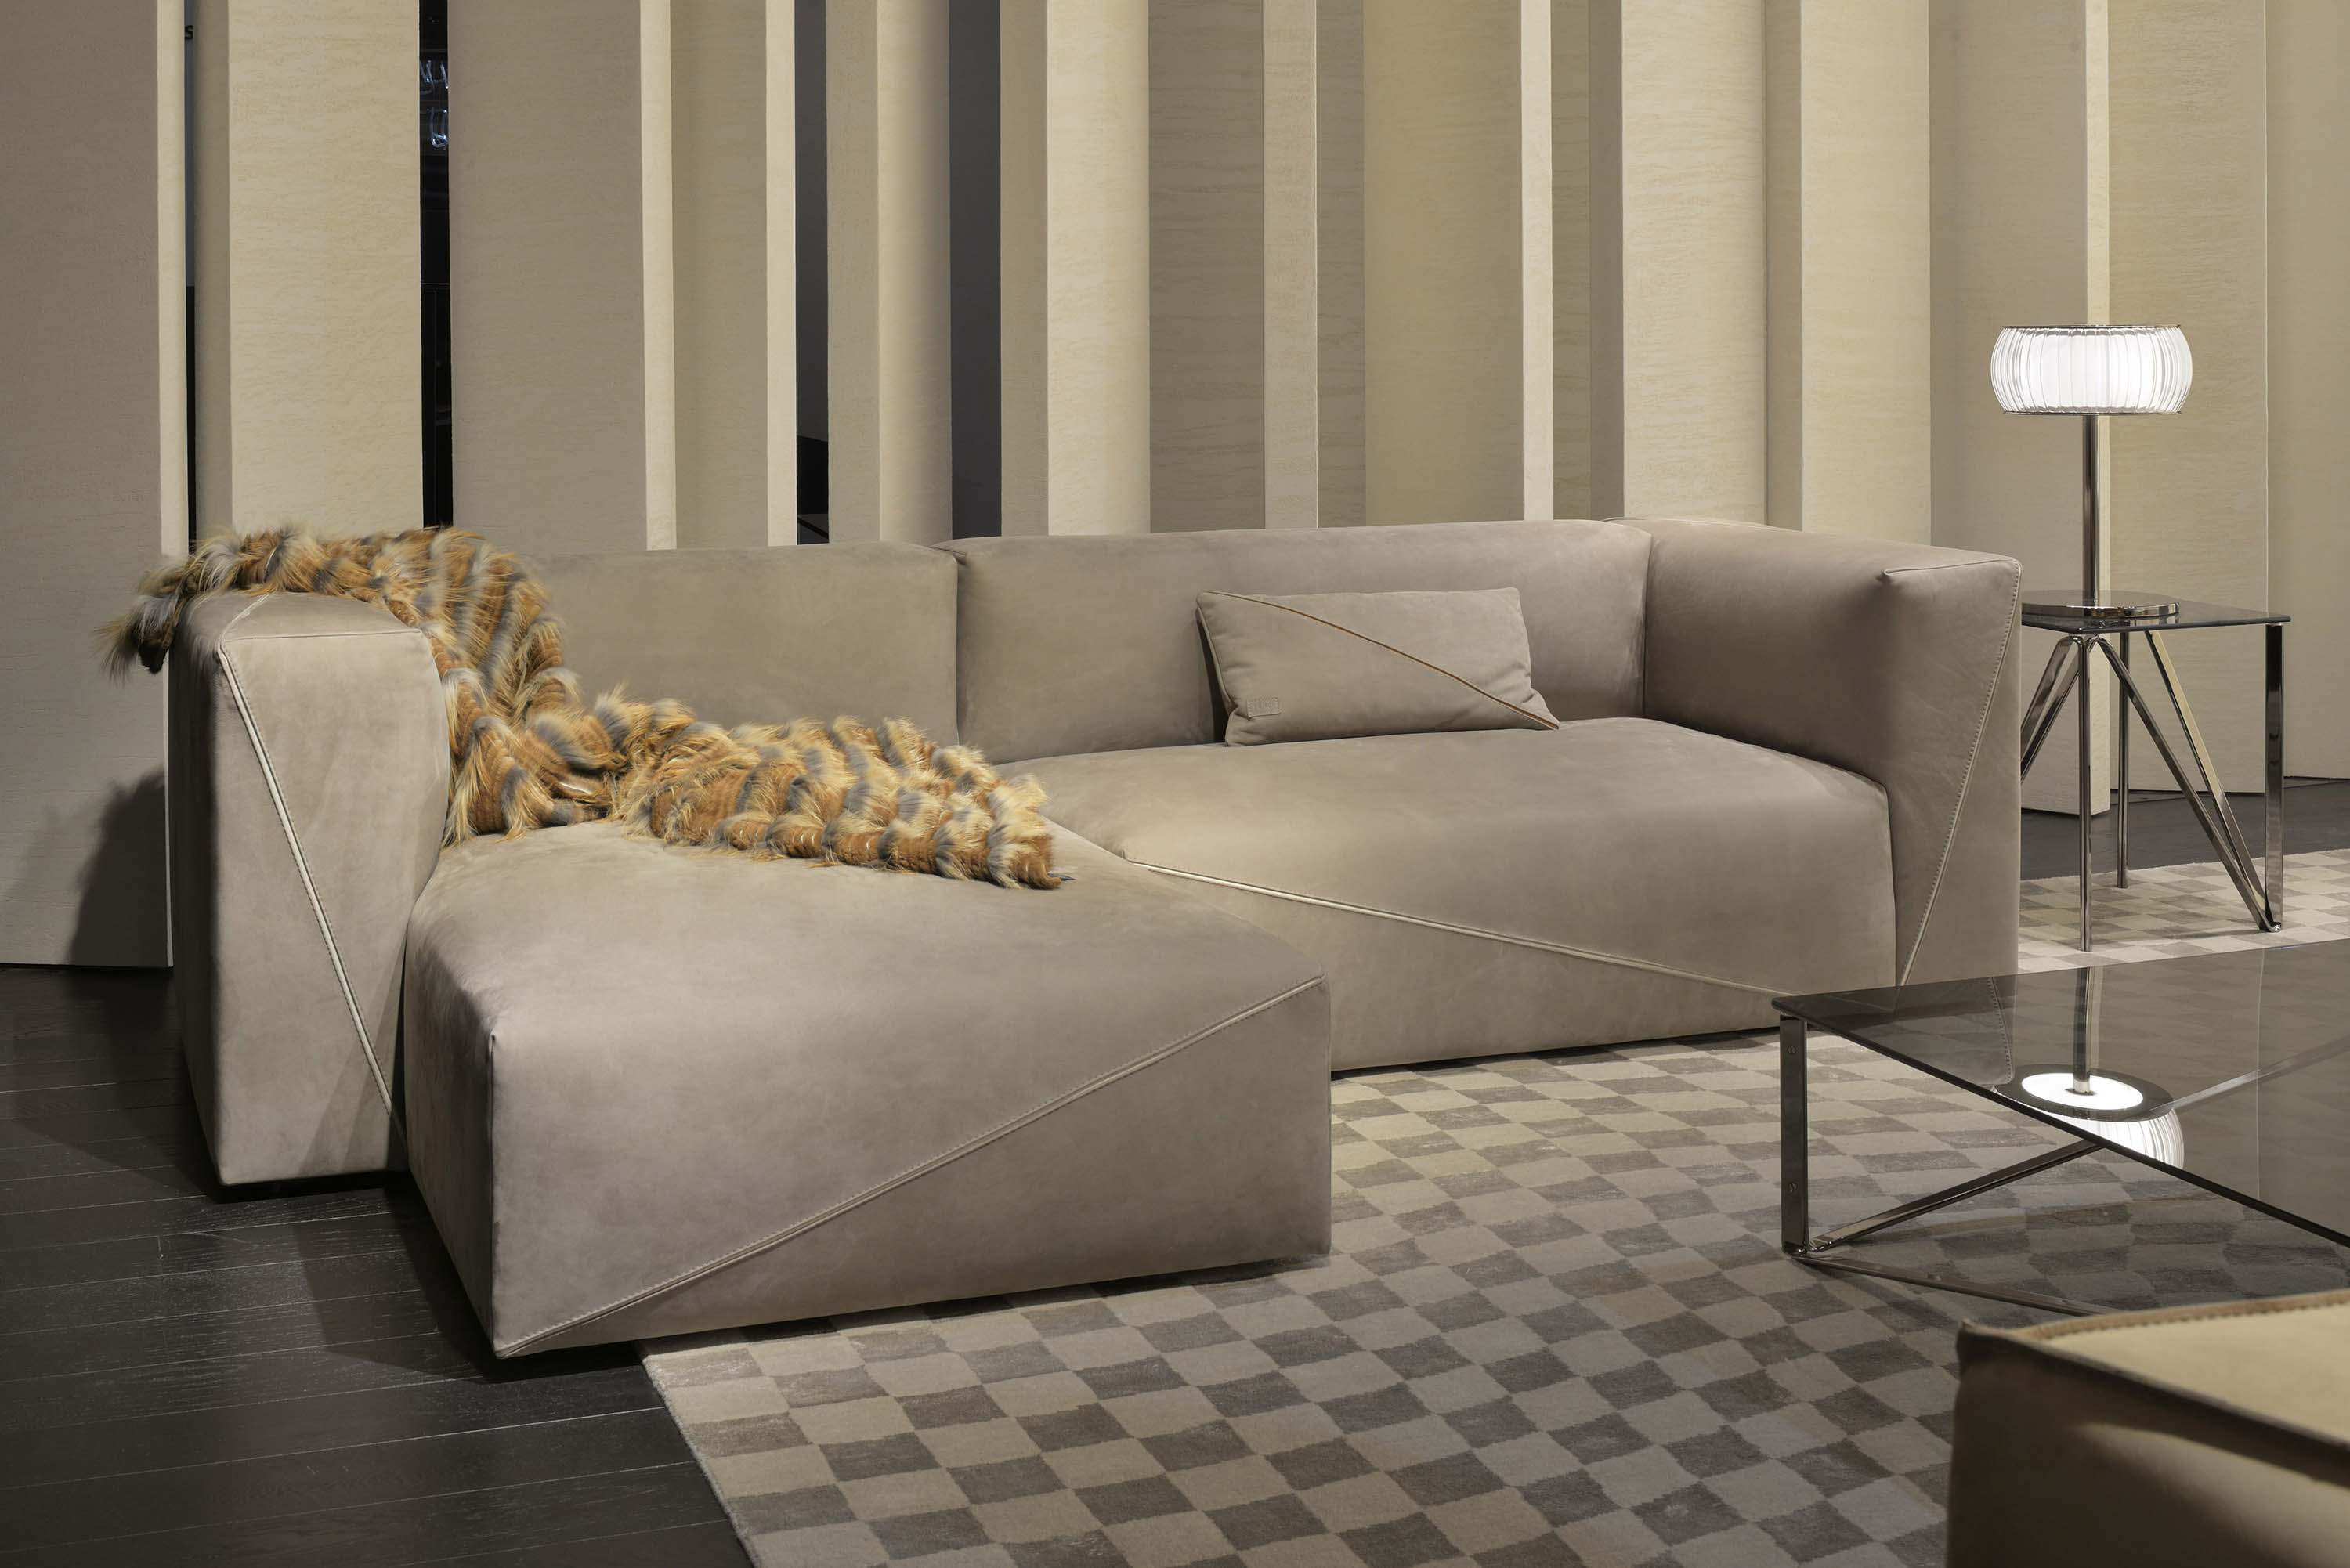 Diagonal Sectional Sofa Lounge Sofas From Fendi Casa Architonic